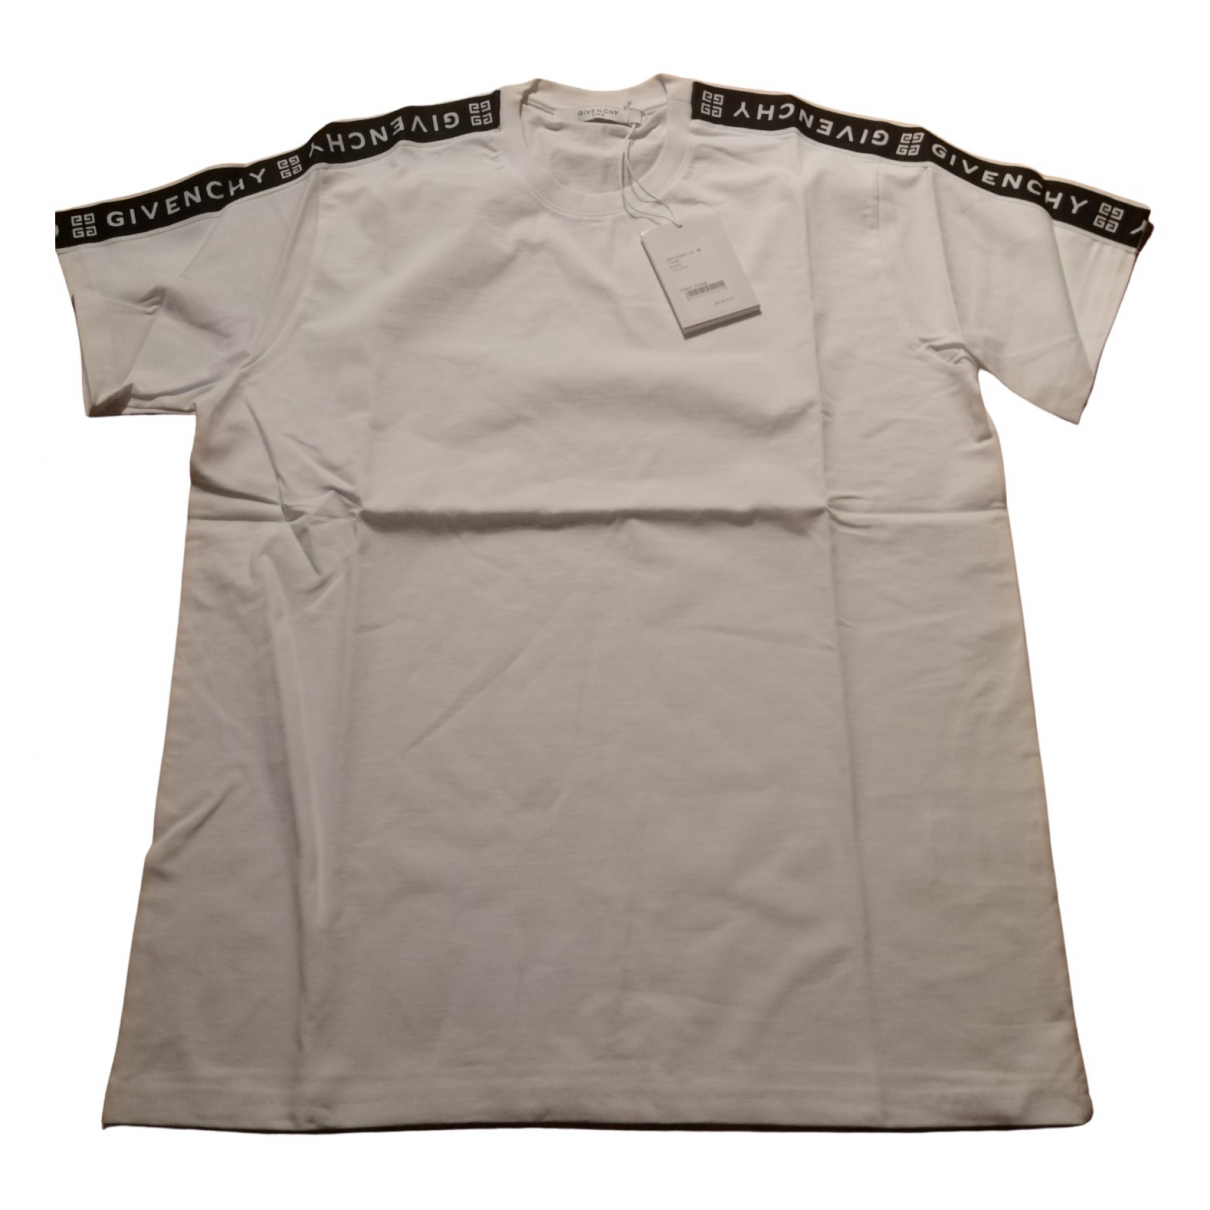 Givenchy \N White Cotton T-shirts for Men M International